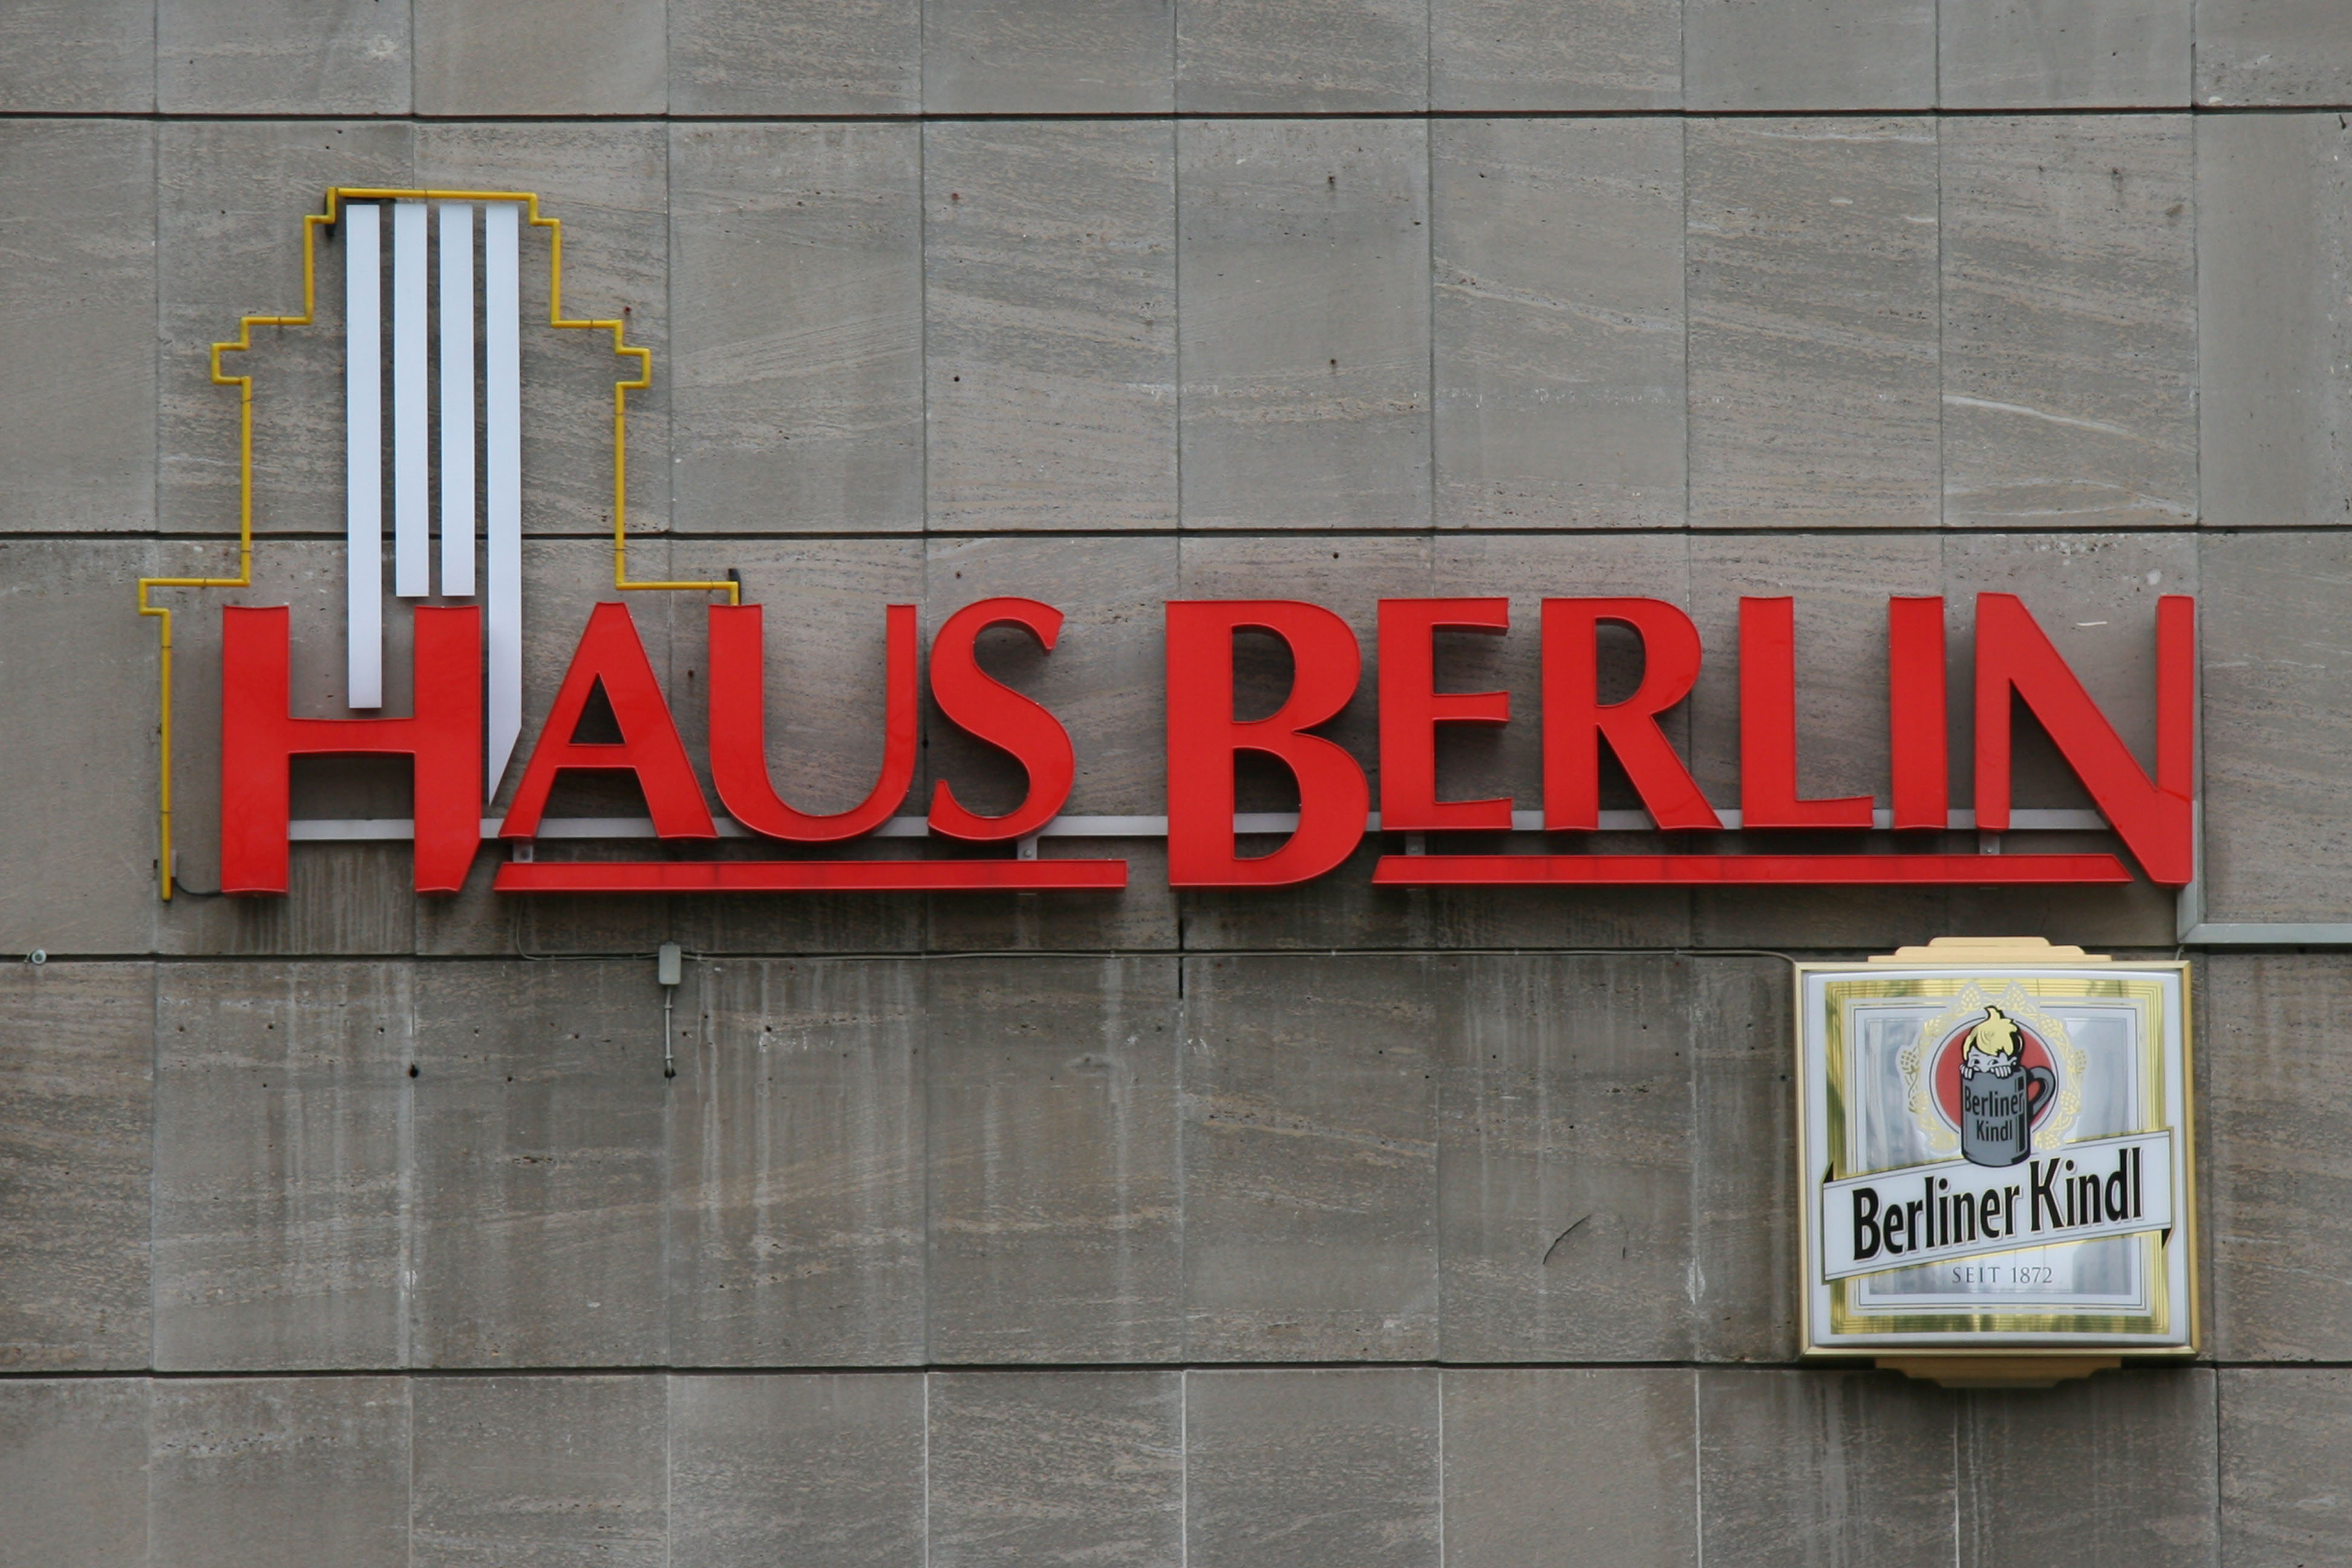 The Haus Berlin sign on Karl-Marx-Allee in Berlin